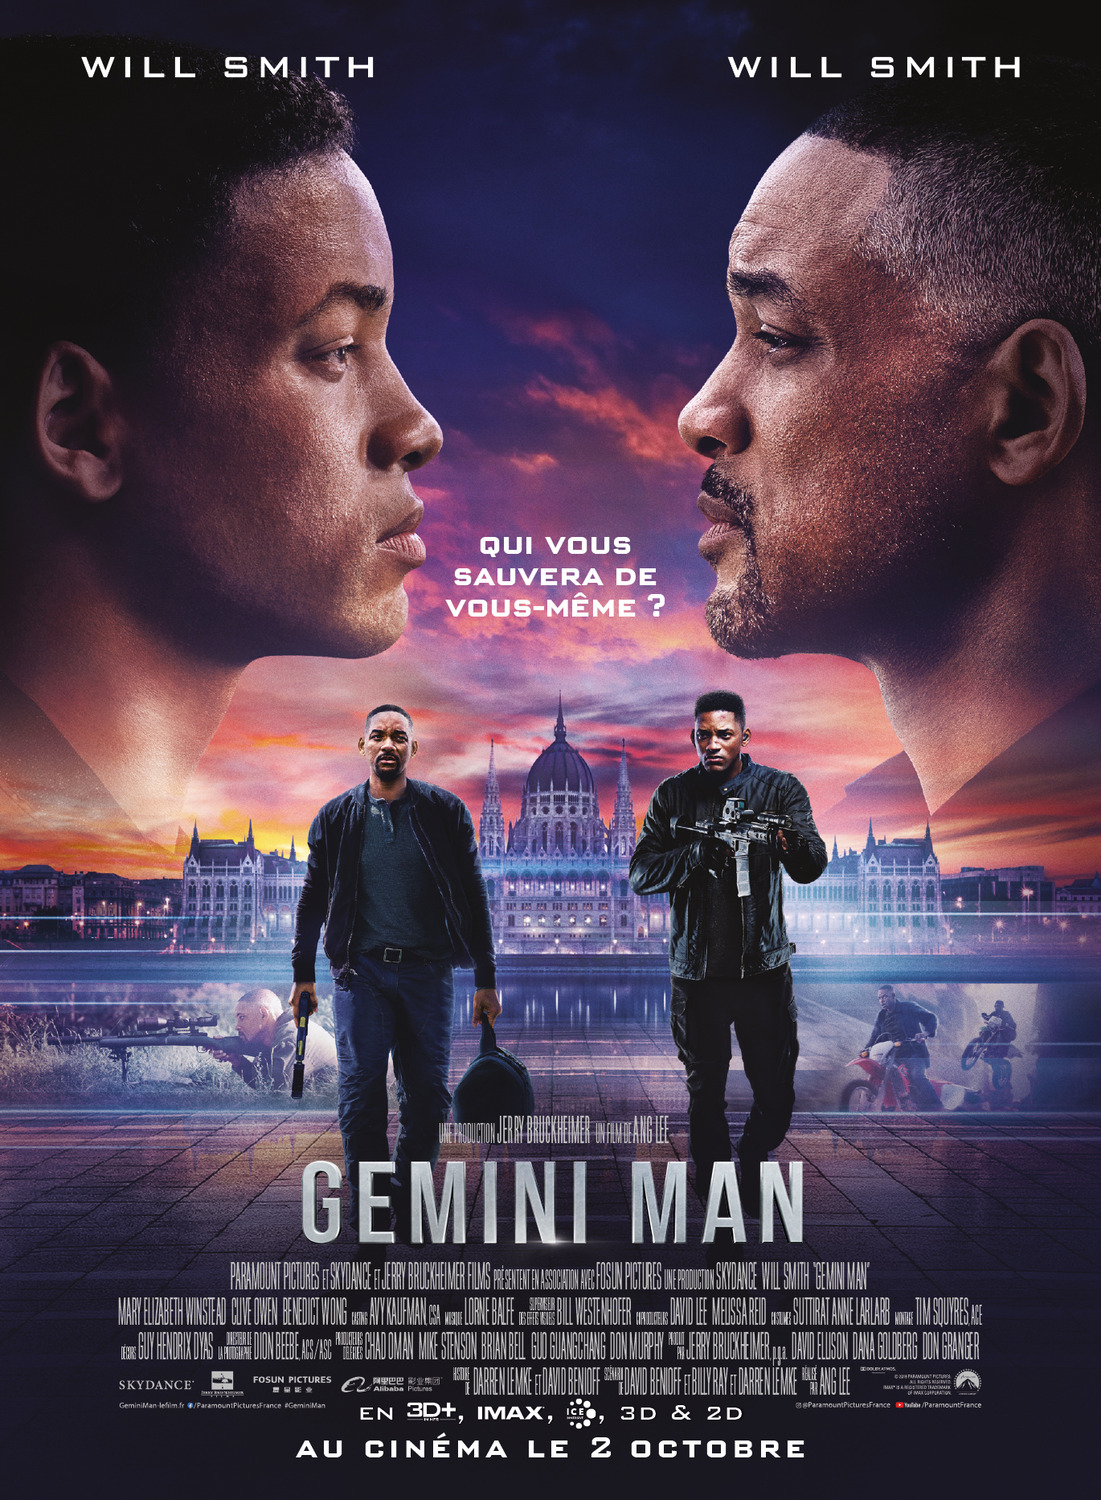 Film De Will Smith : smith, Gemini, Movie, Starring, Smith, |Teaser, Trailer